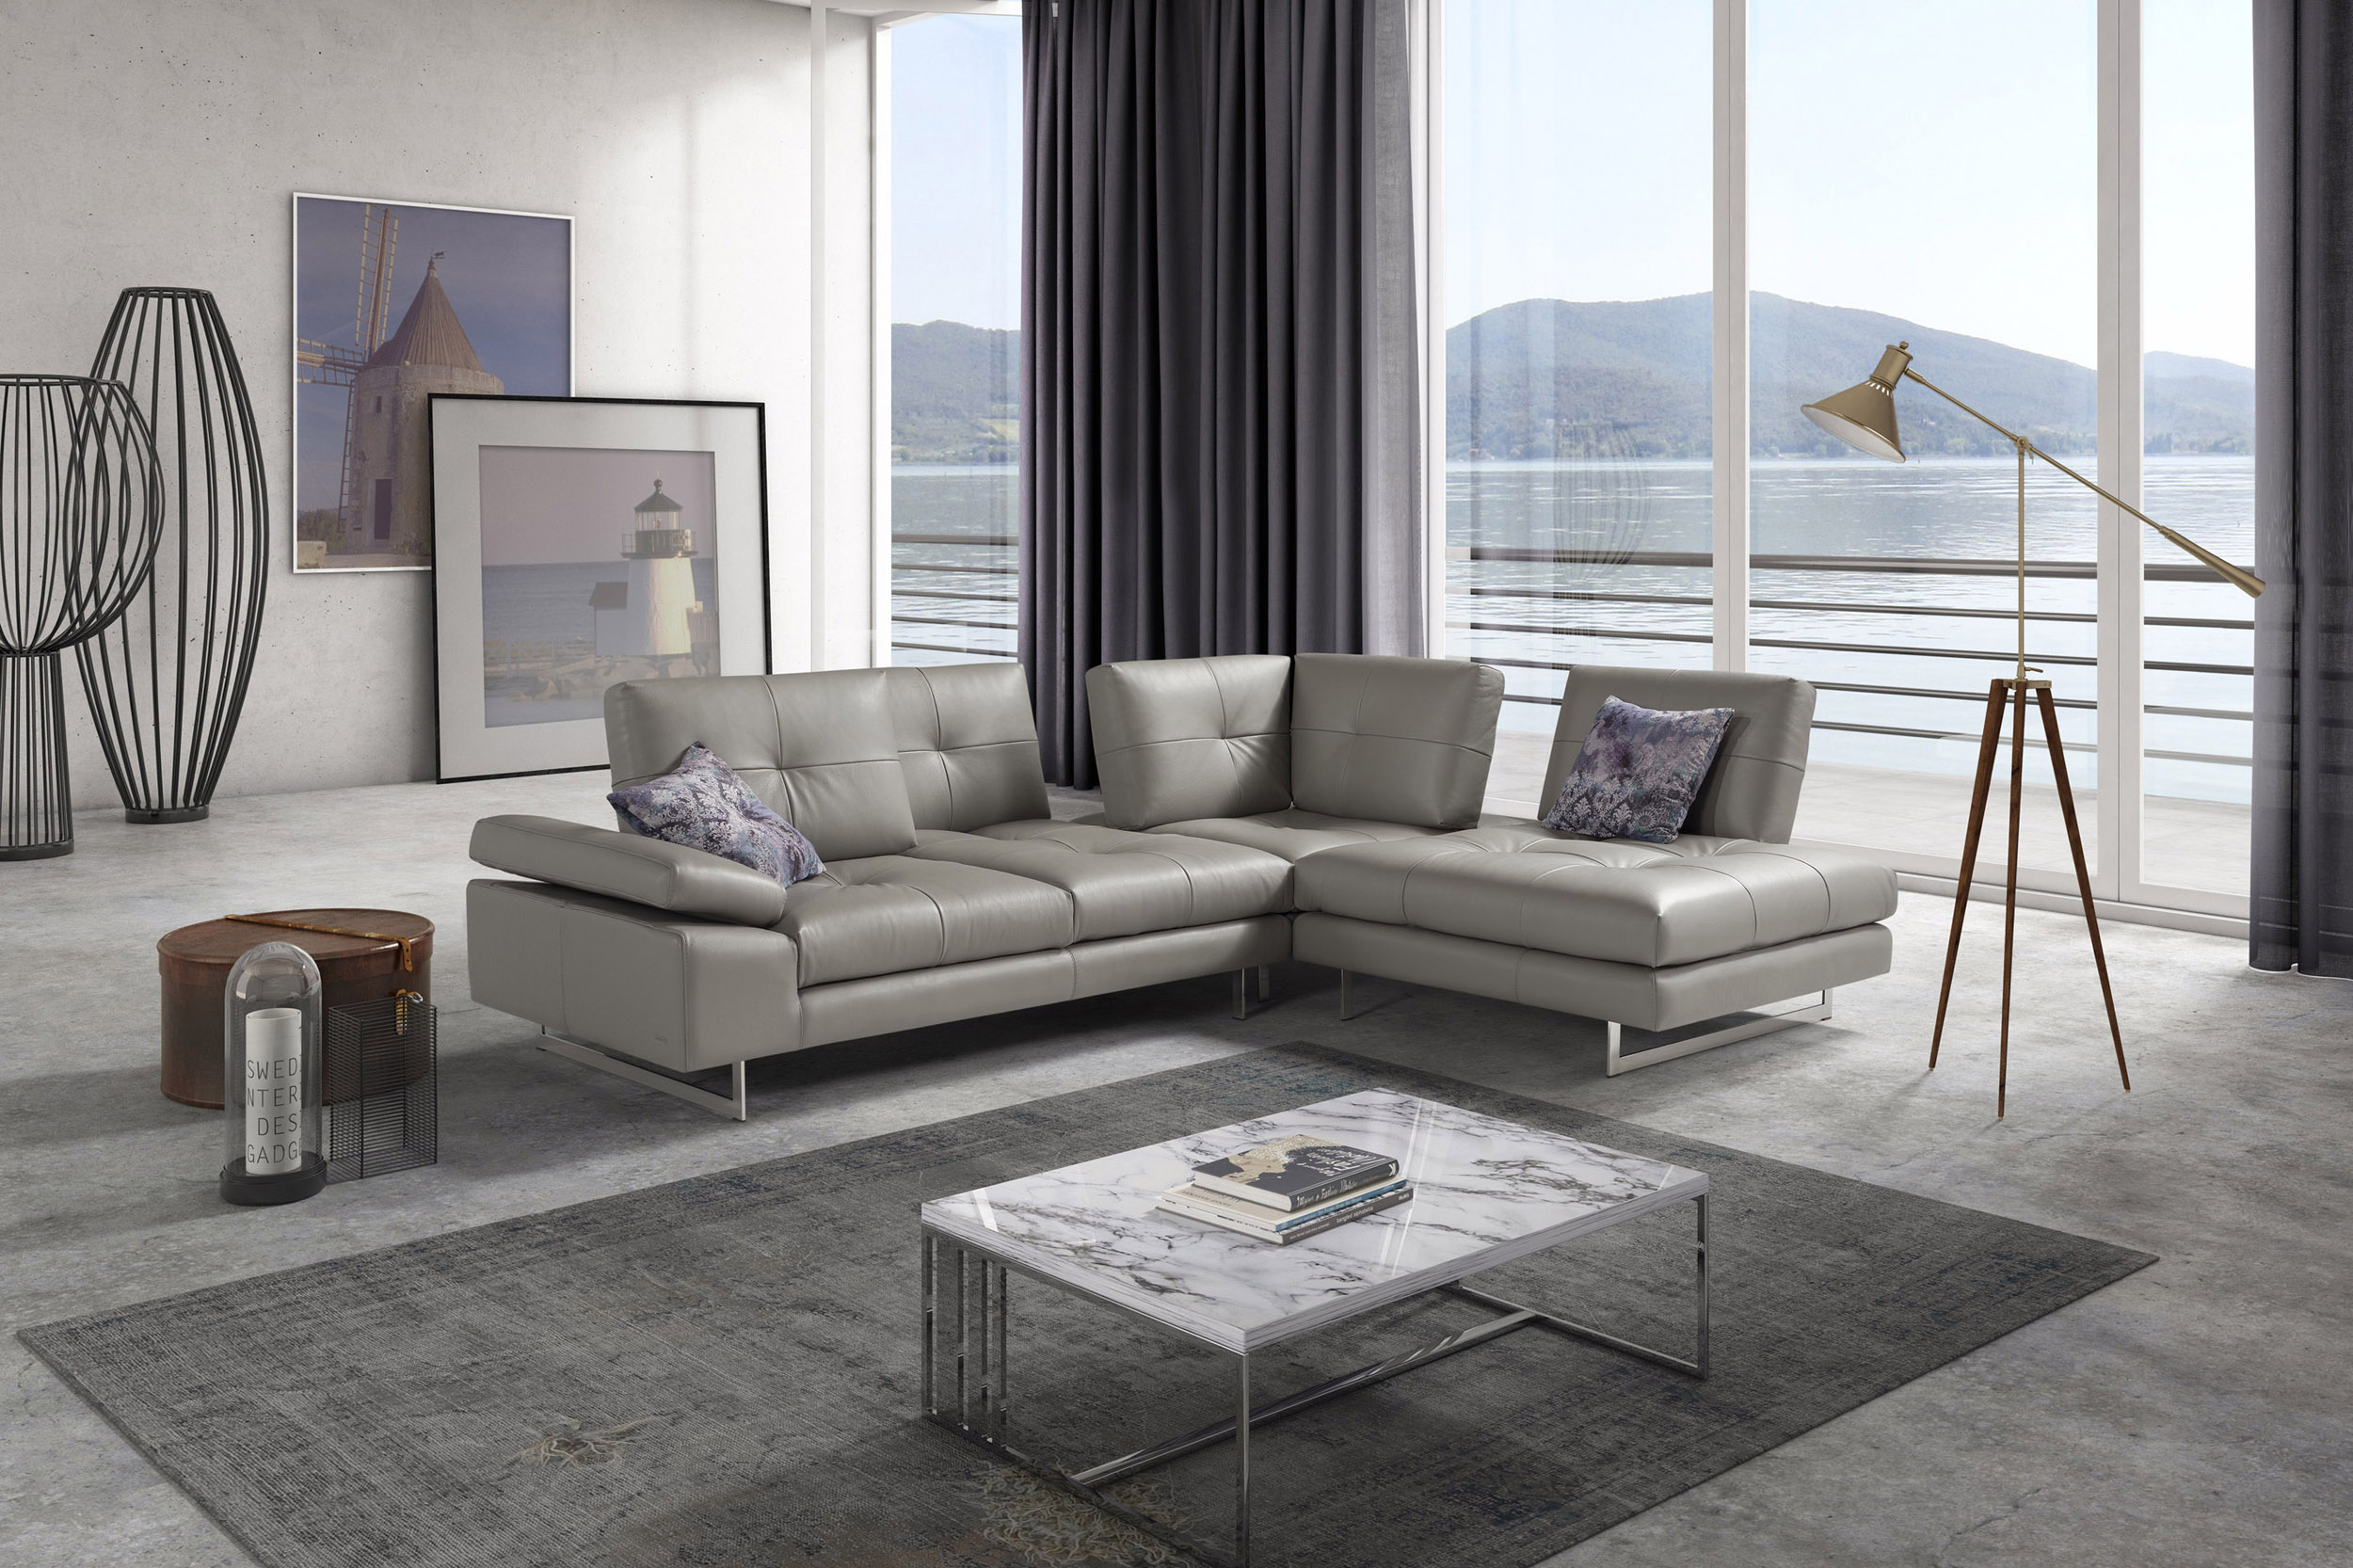 living room modern living room furniture giessegi | Advanced Adjustable Tufted Leather Sectional with Chaise ...